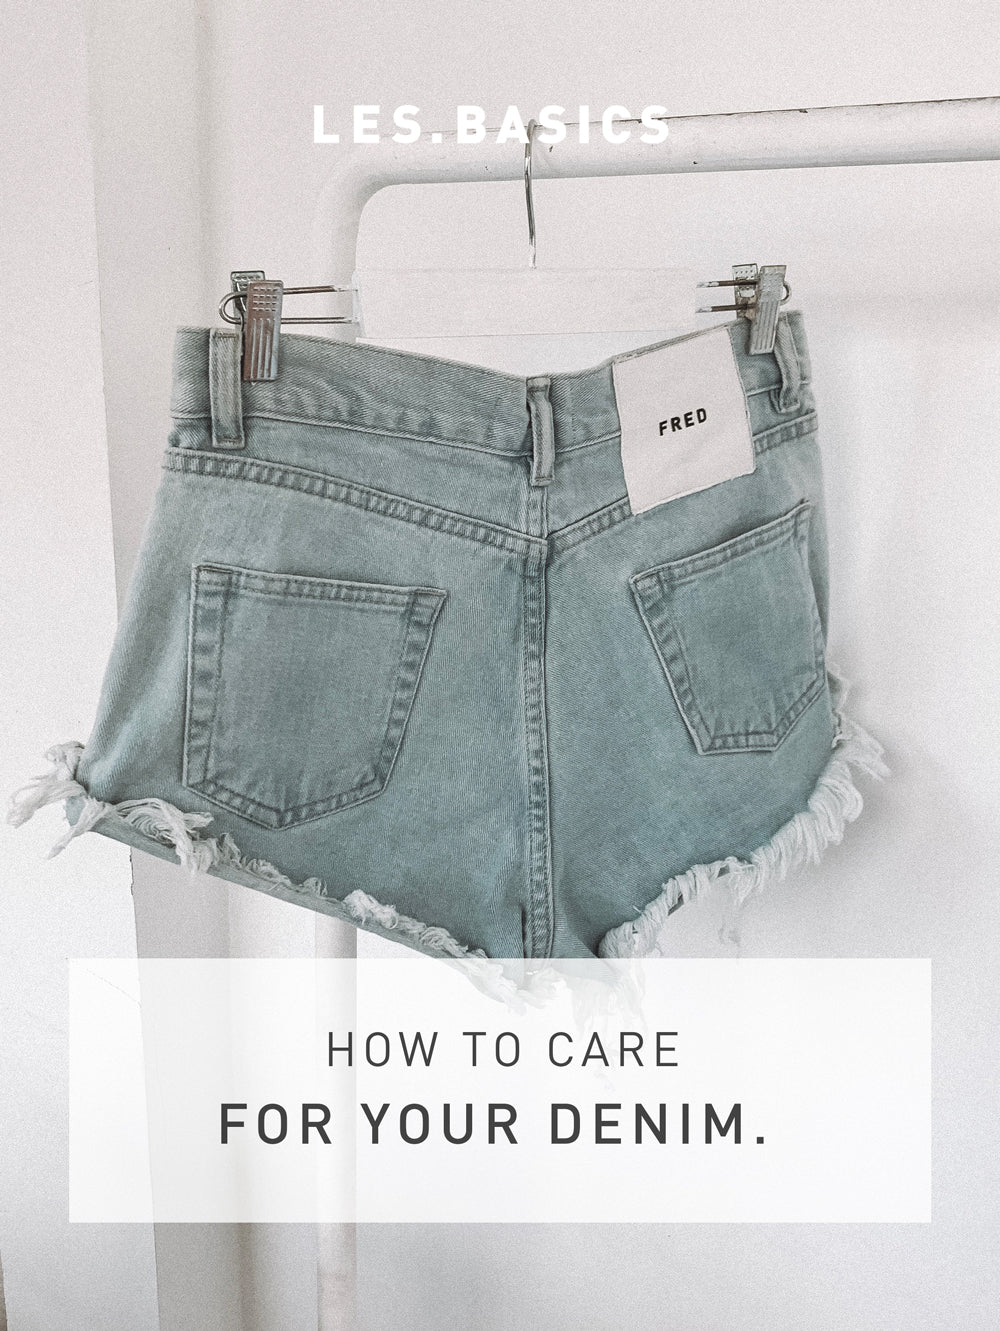 No more ruining your jeans: How to care for your denim